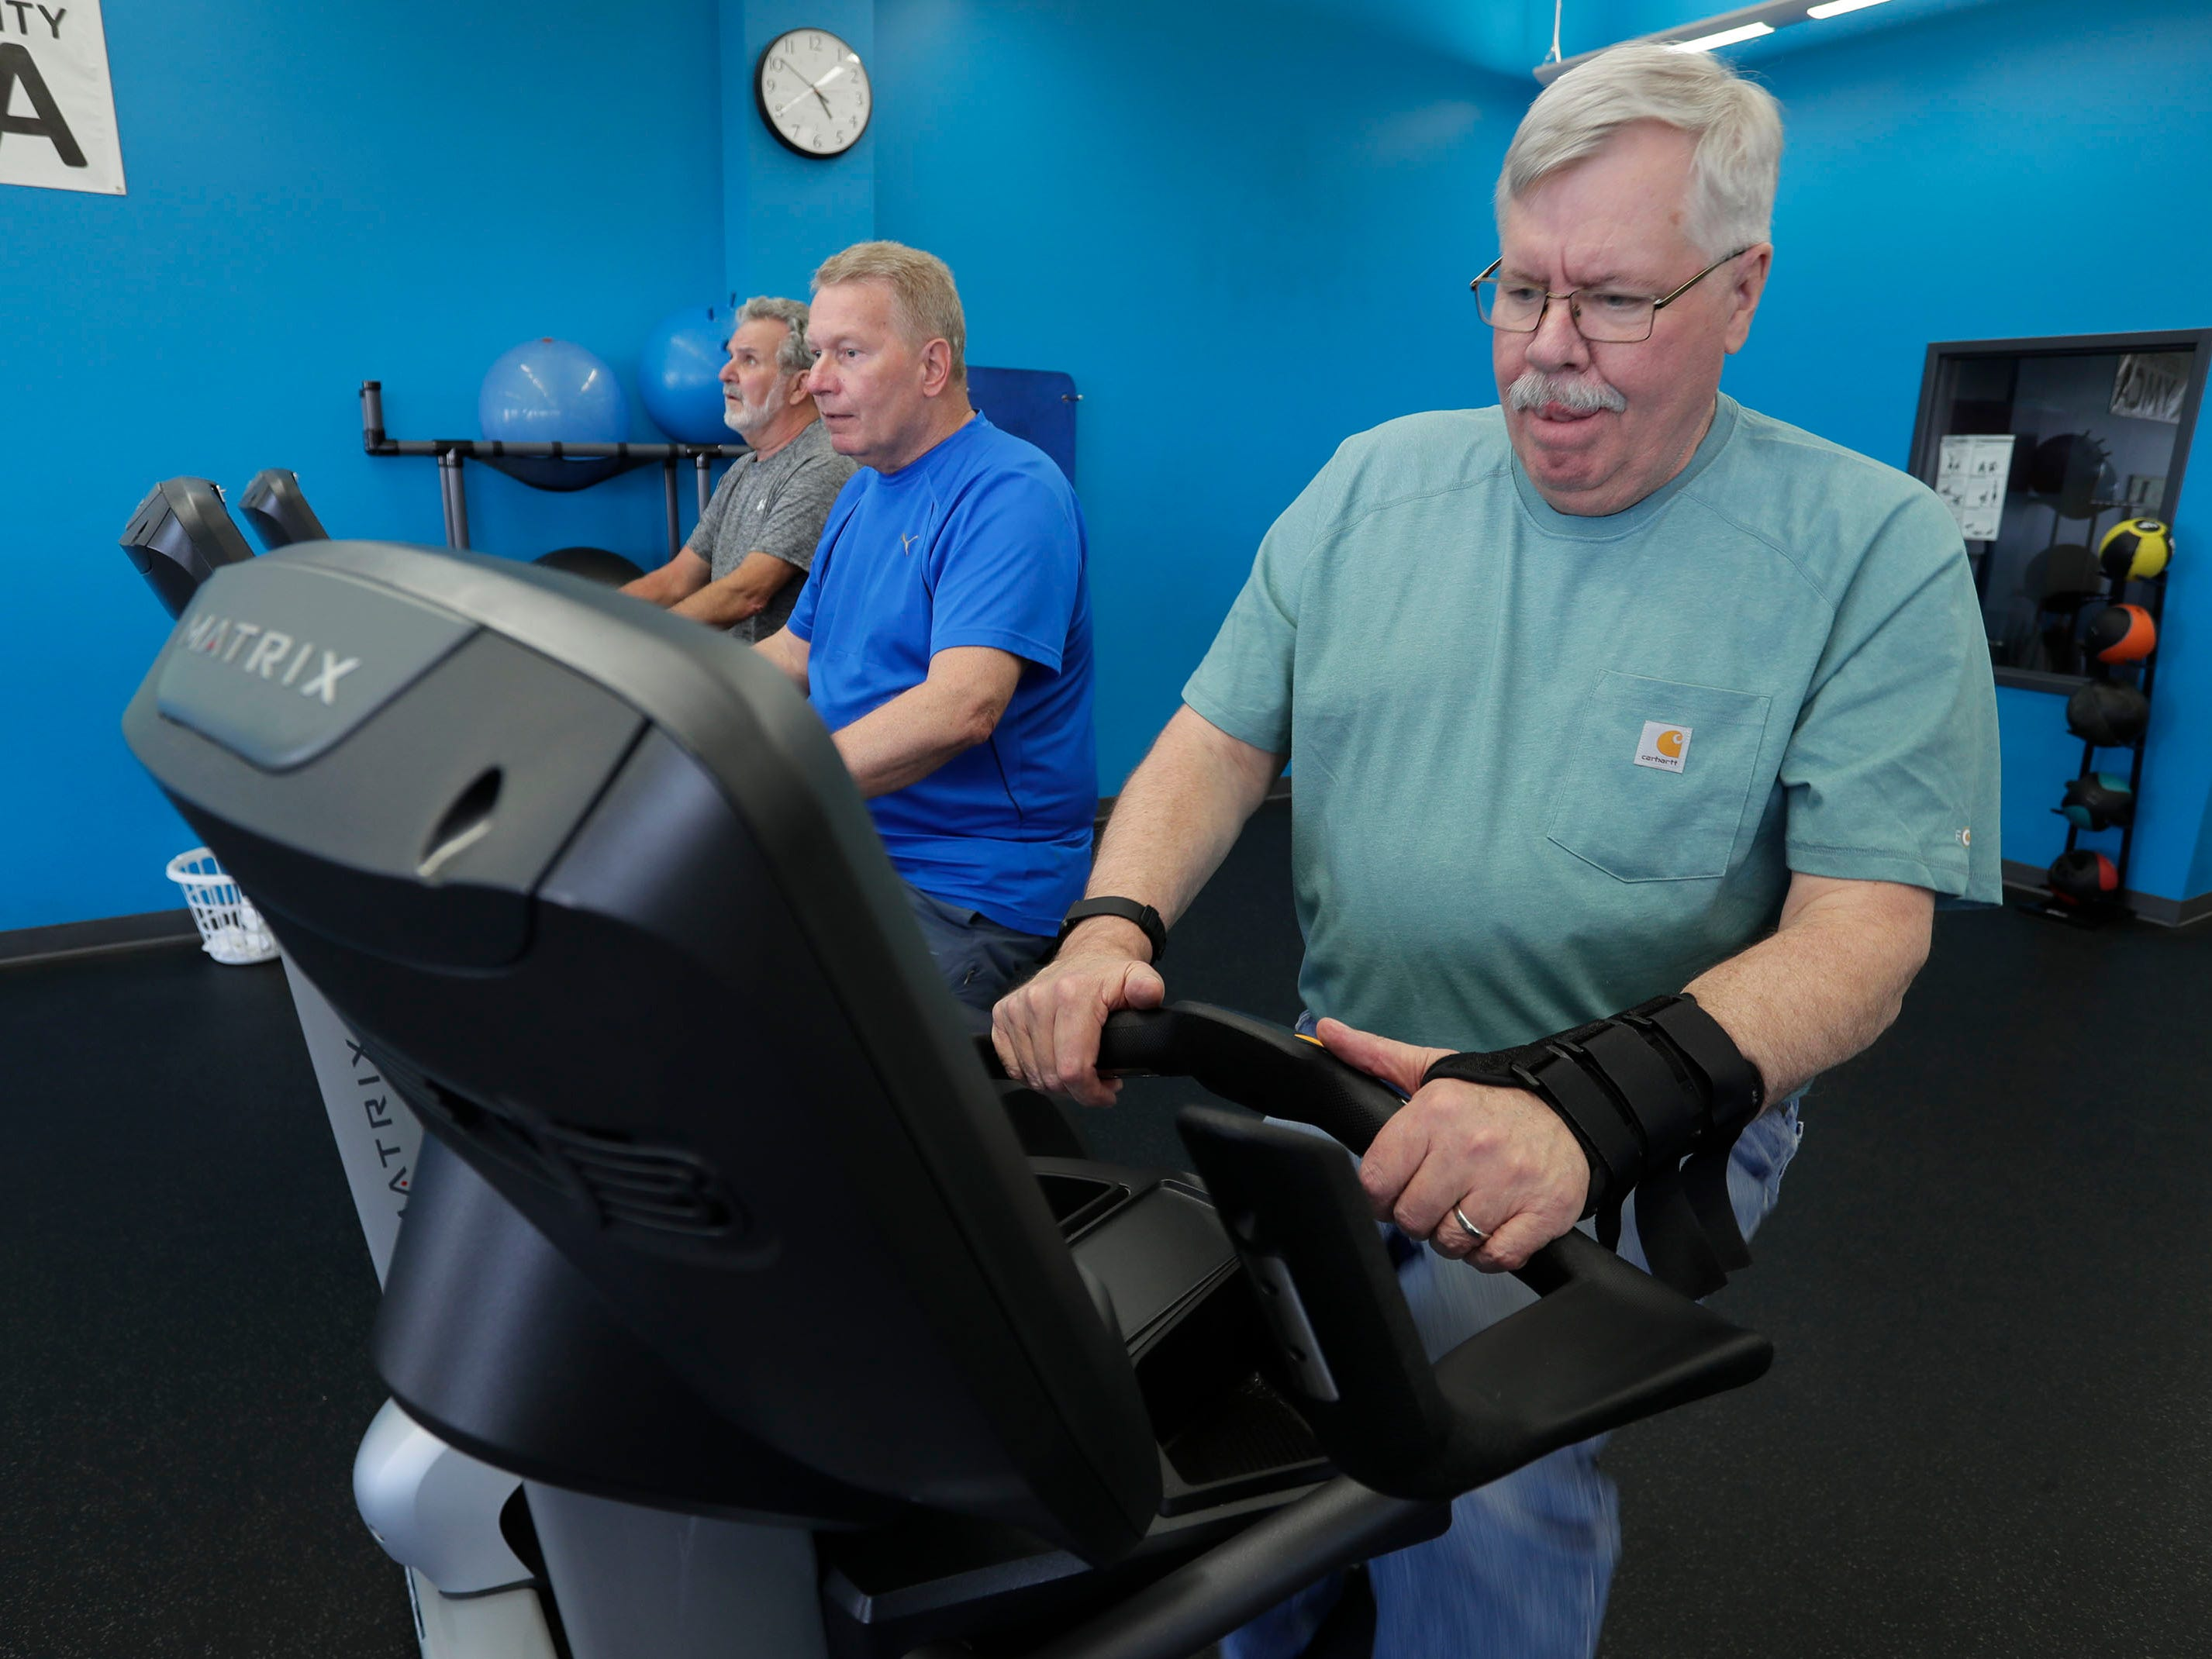 Larry Boll, left, Ken Pipping, center, and Ralph Worm, get in miles on stationary cycles during Fighting Parkinson's class at the YMCA Thursday, March 21, 2019, iin Sheboygan, Wis.